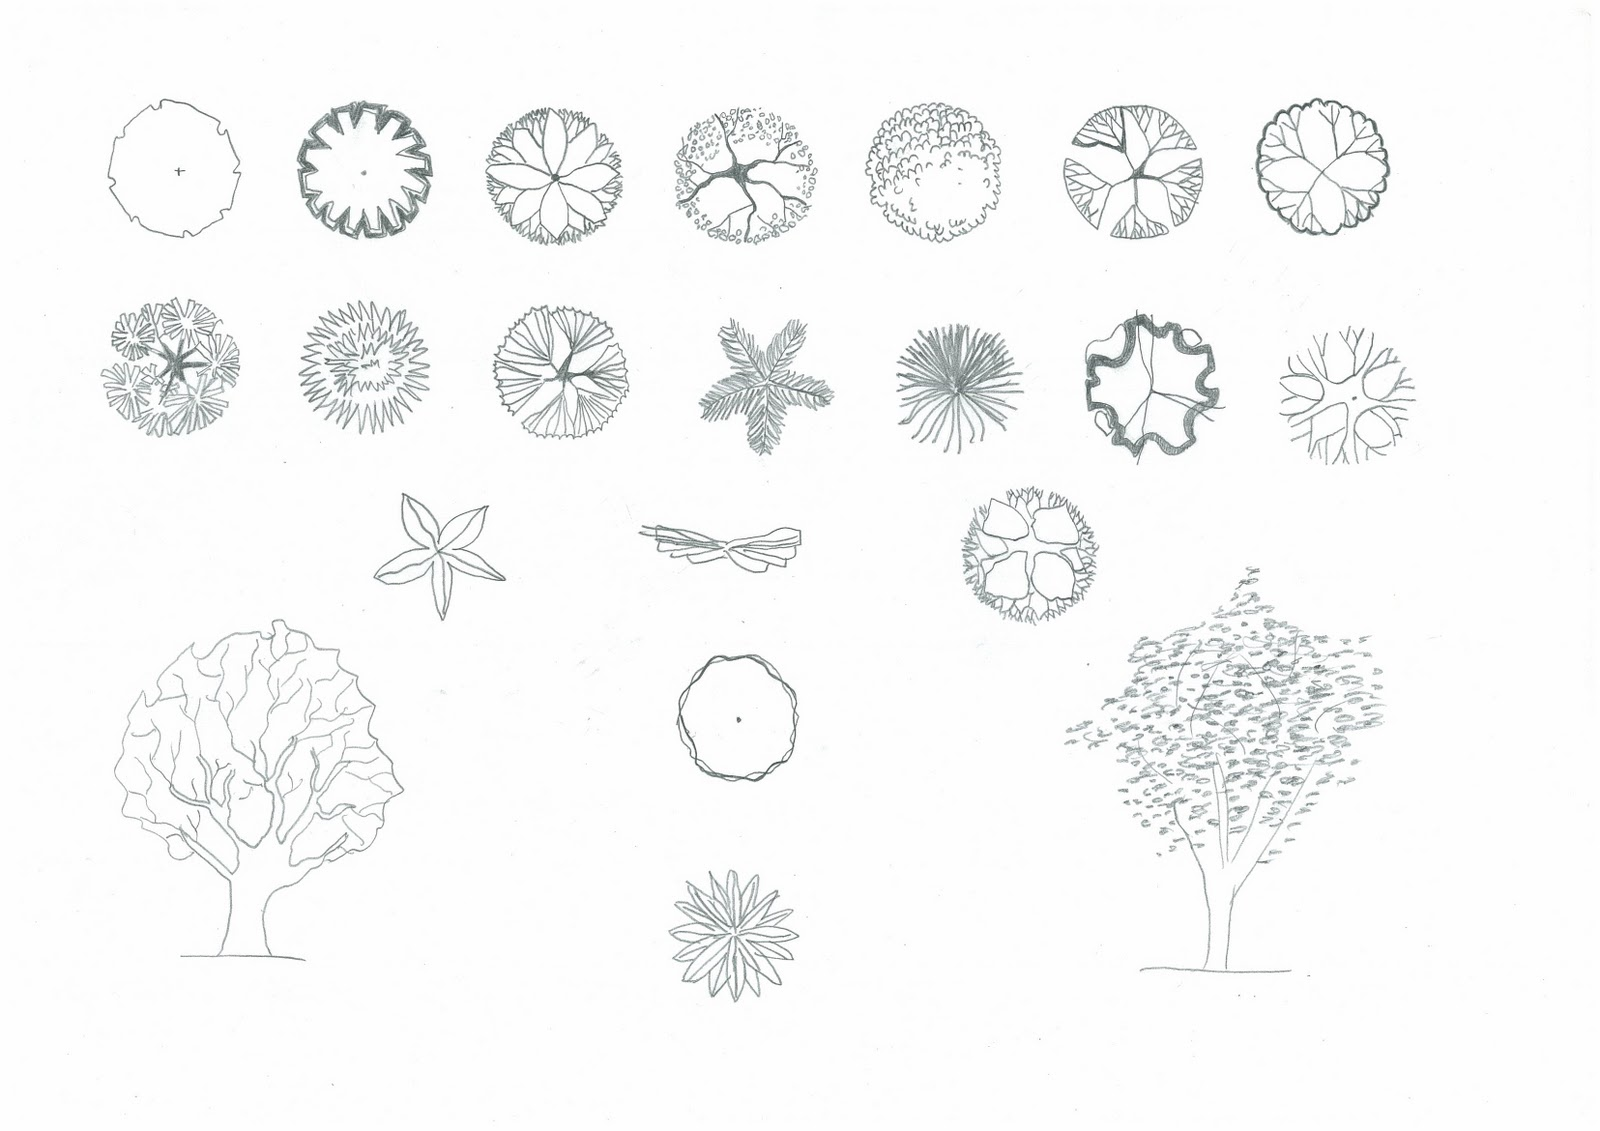 Architectural Trees Drawings Architectural Tree Symbols